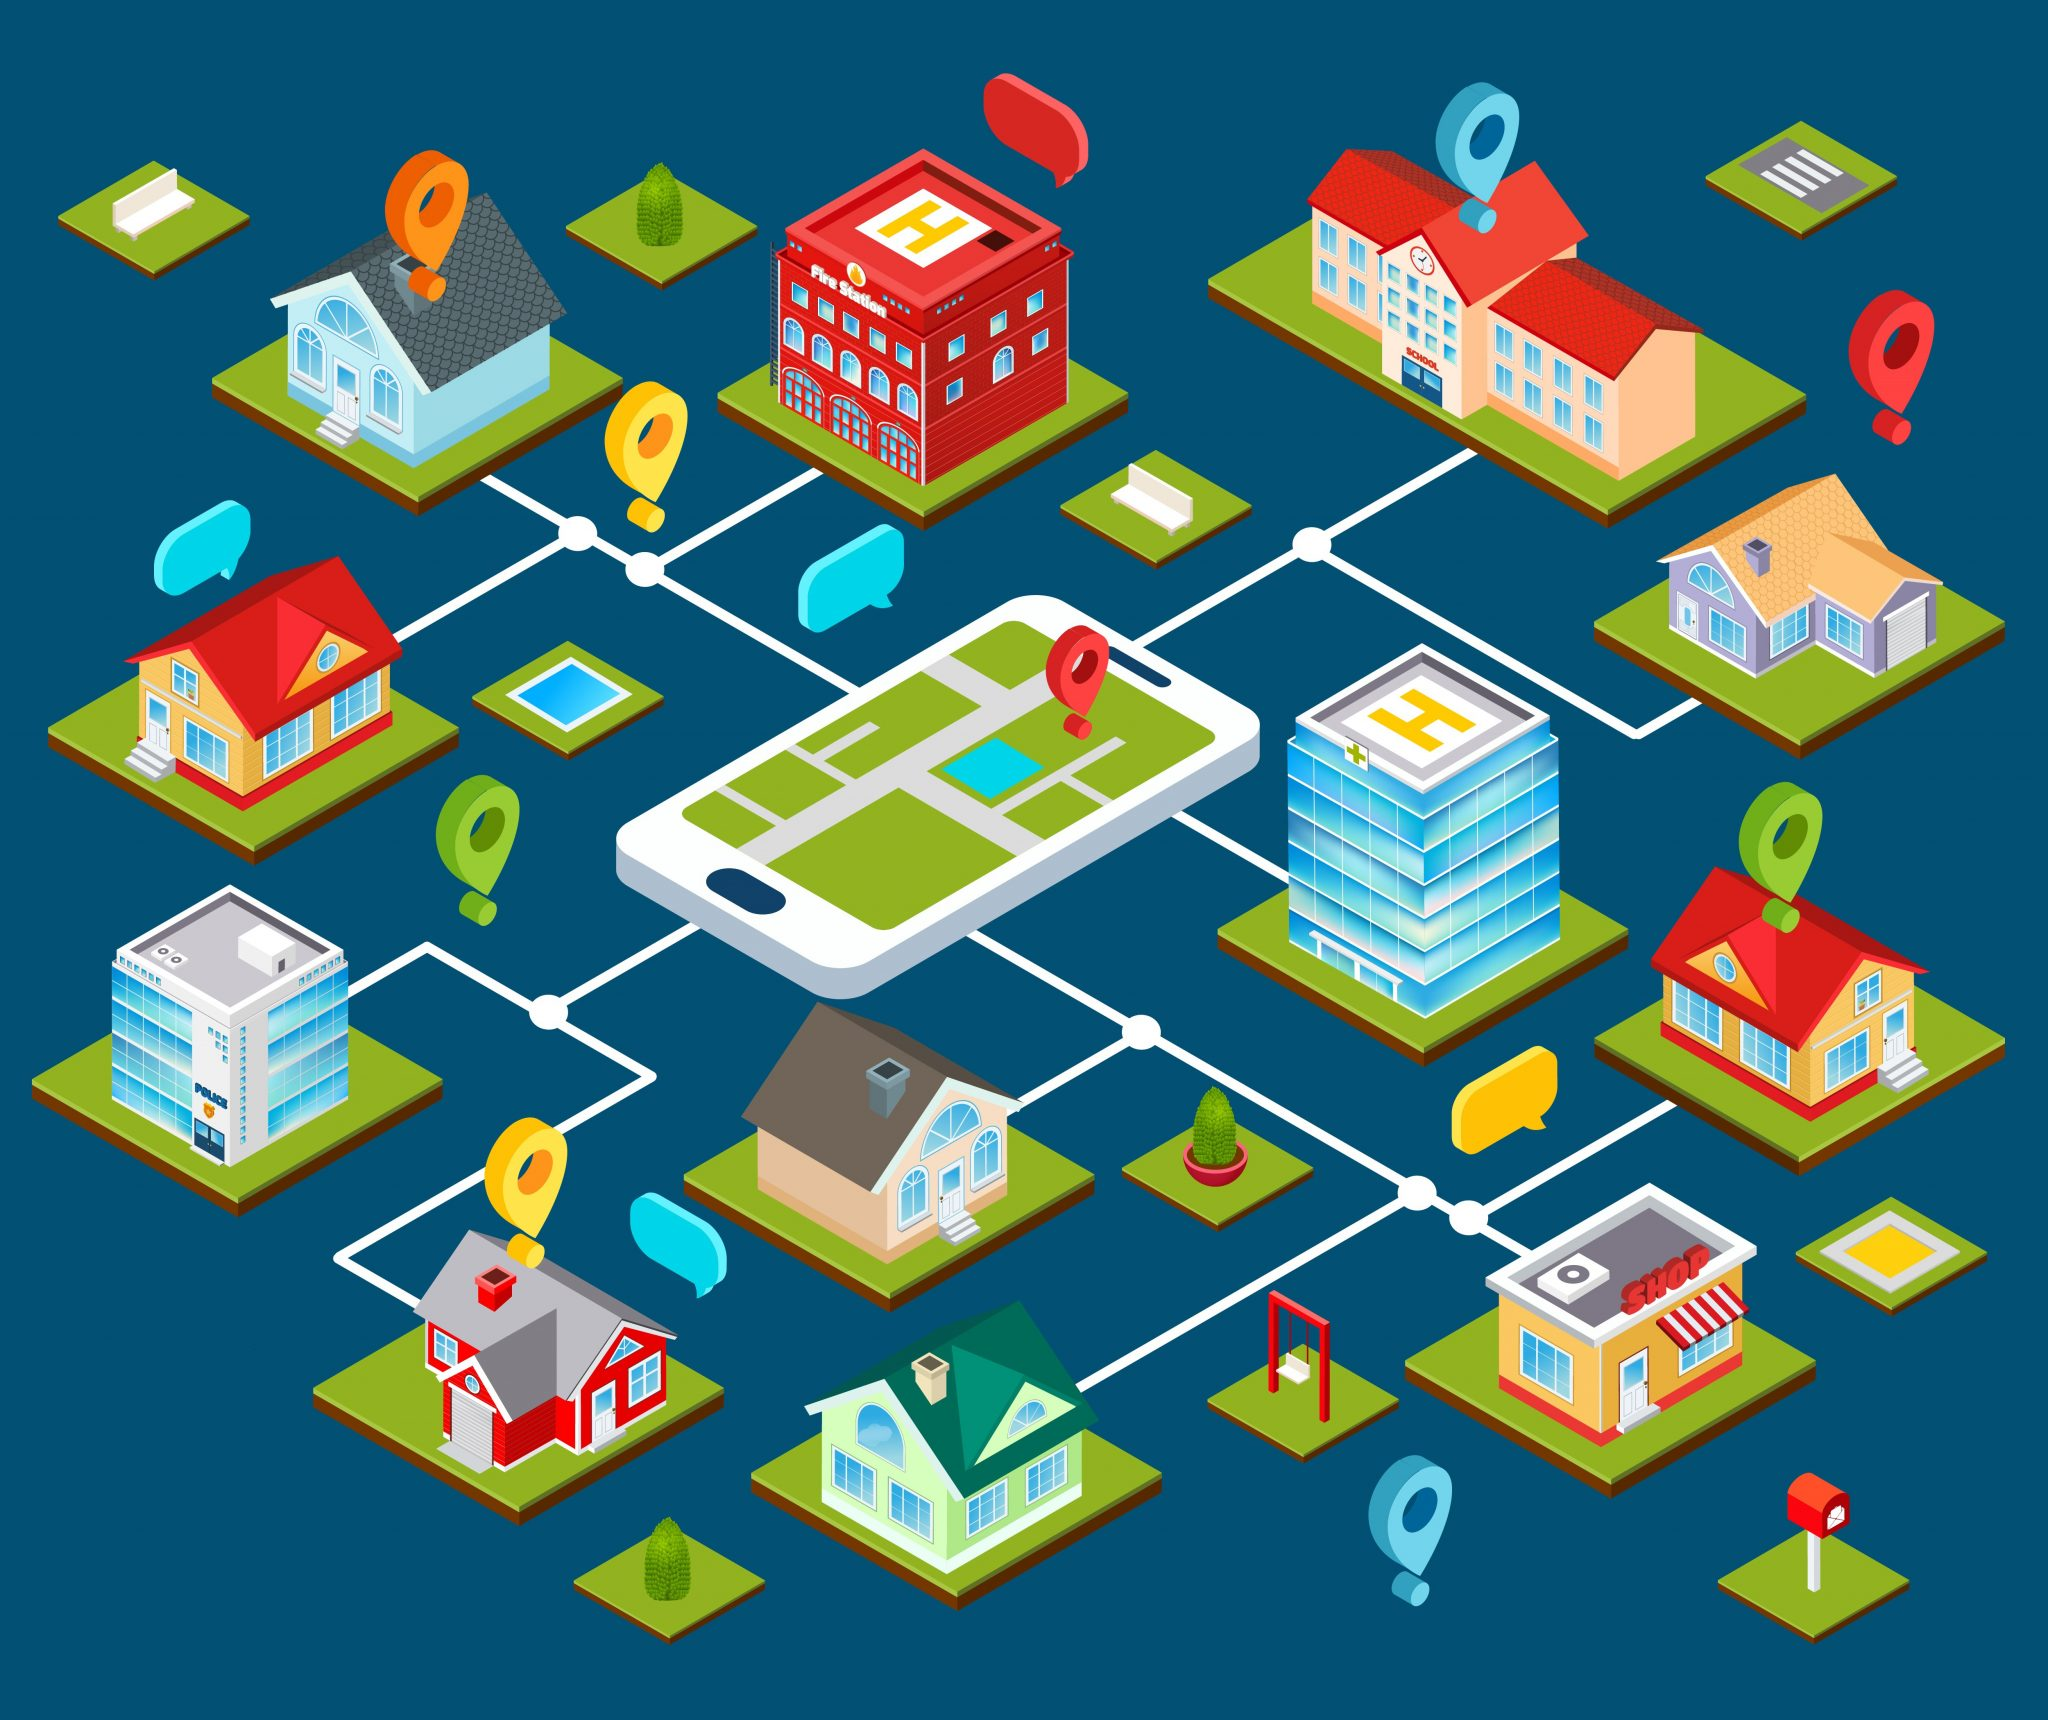 Geofence Alerts, Geofence alerts: How to Use Location-Based Push Notifications